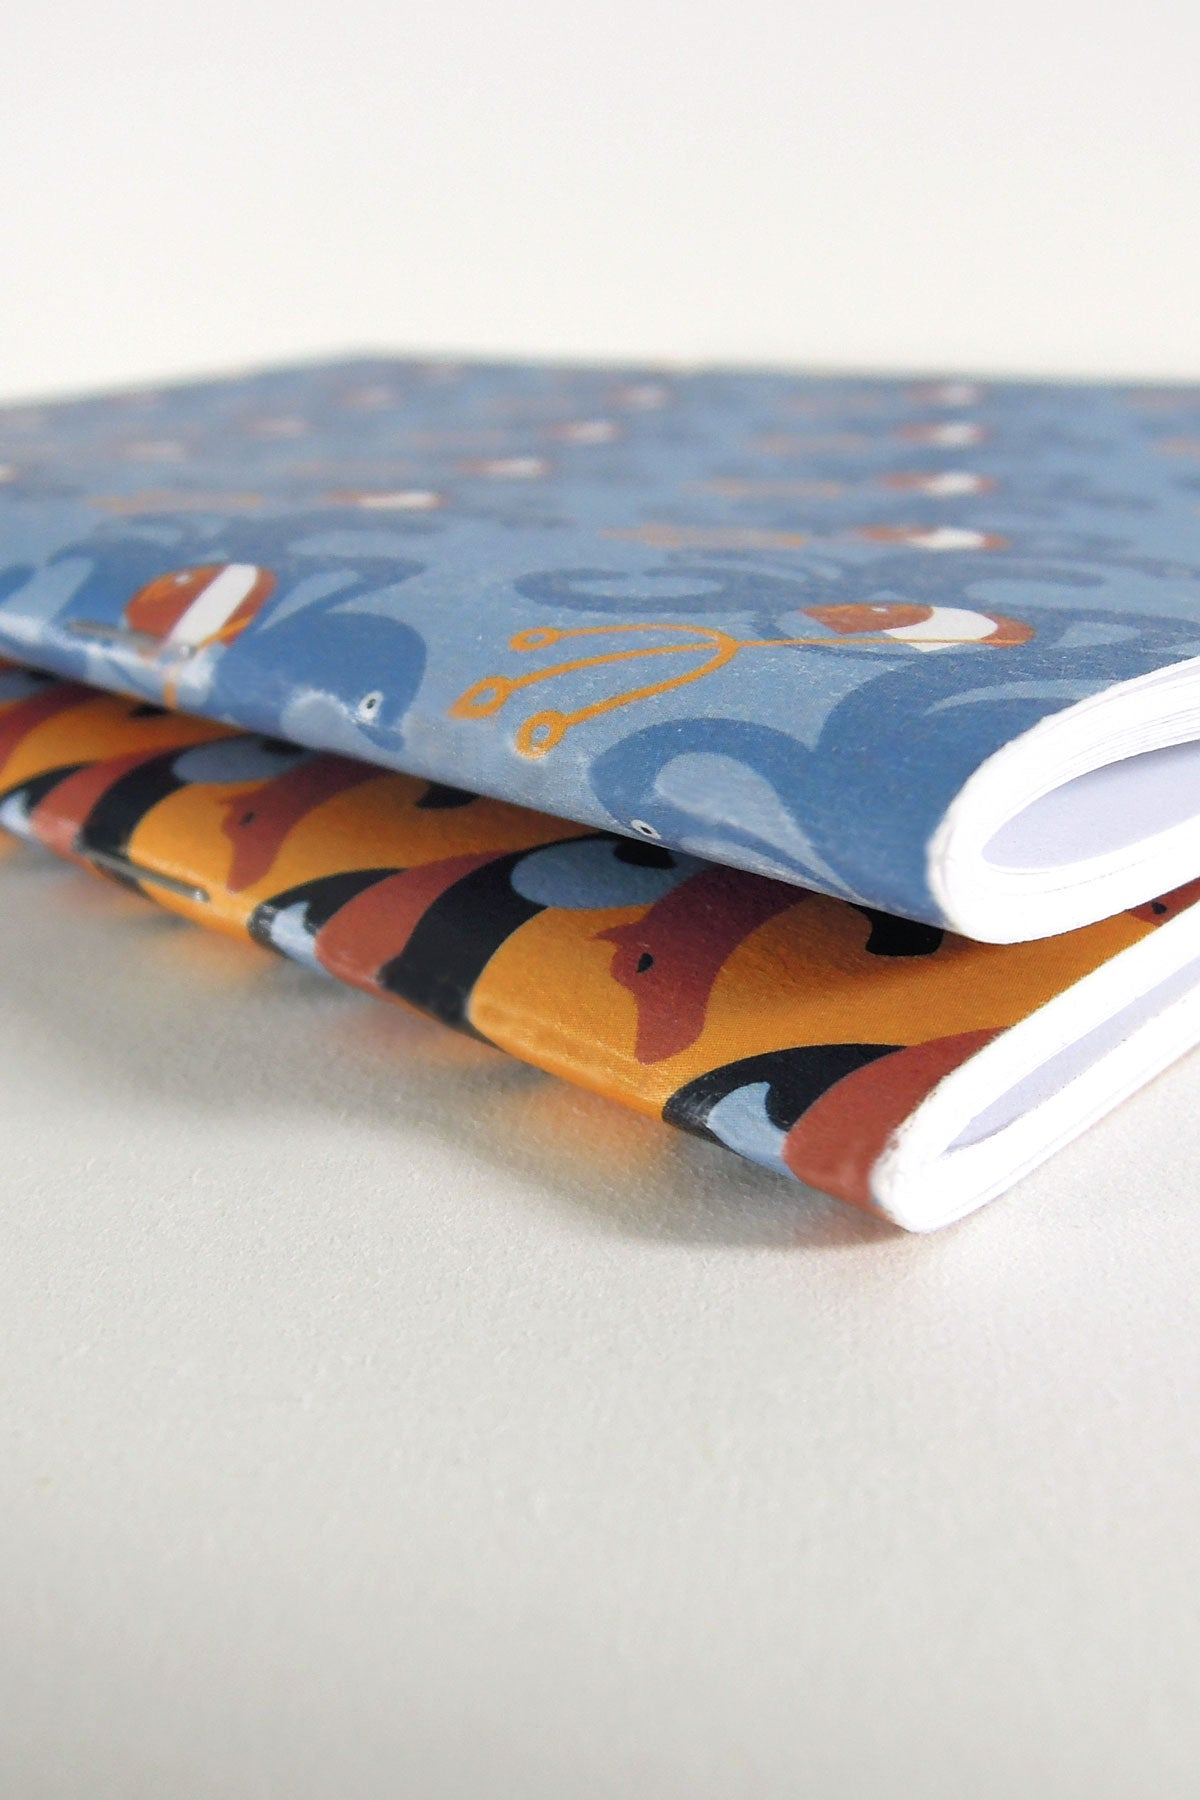 Odyssey limited-edition notebooks. Binding details.